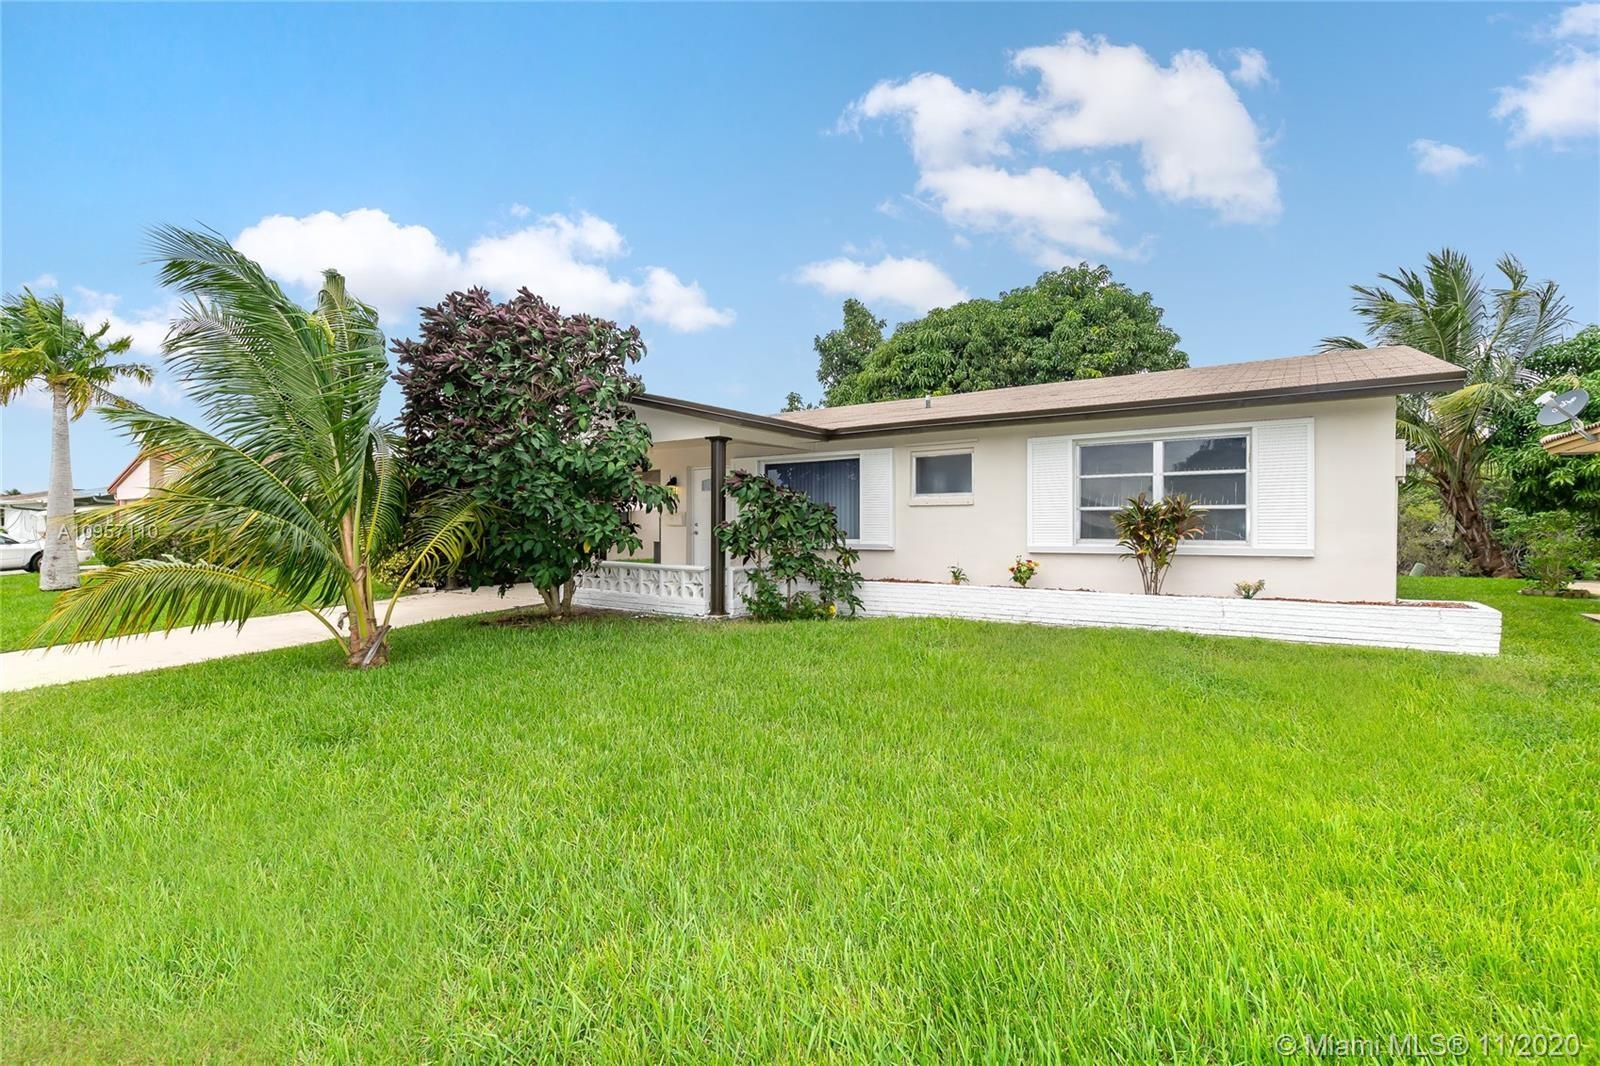 6515 NW 58 Street Property Photo - Other, FL real estate listing